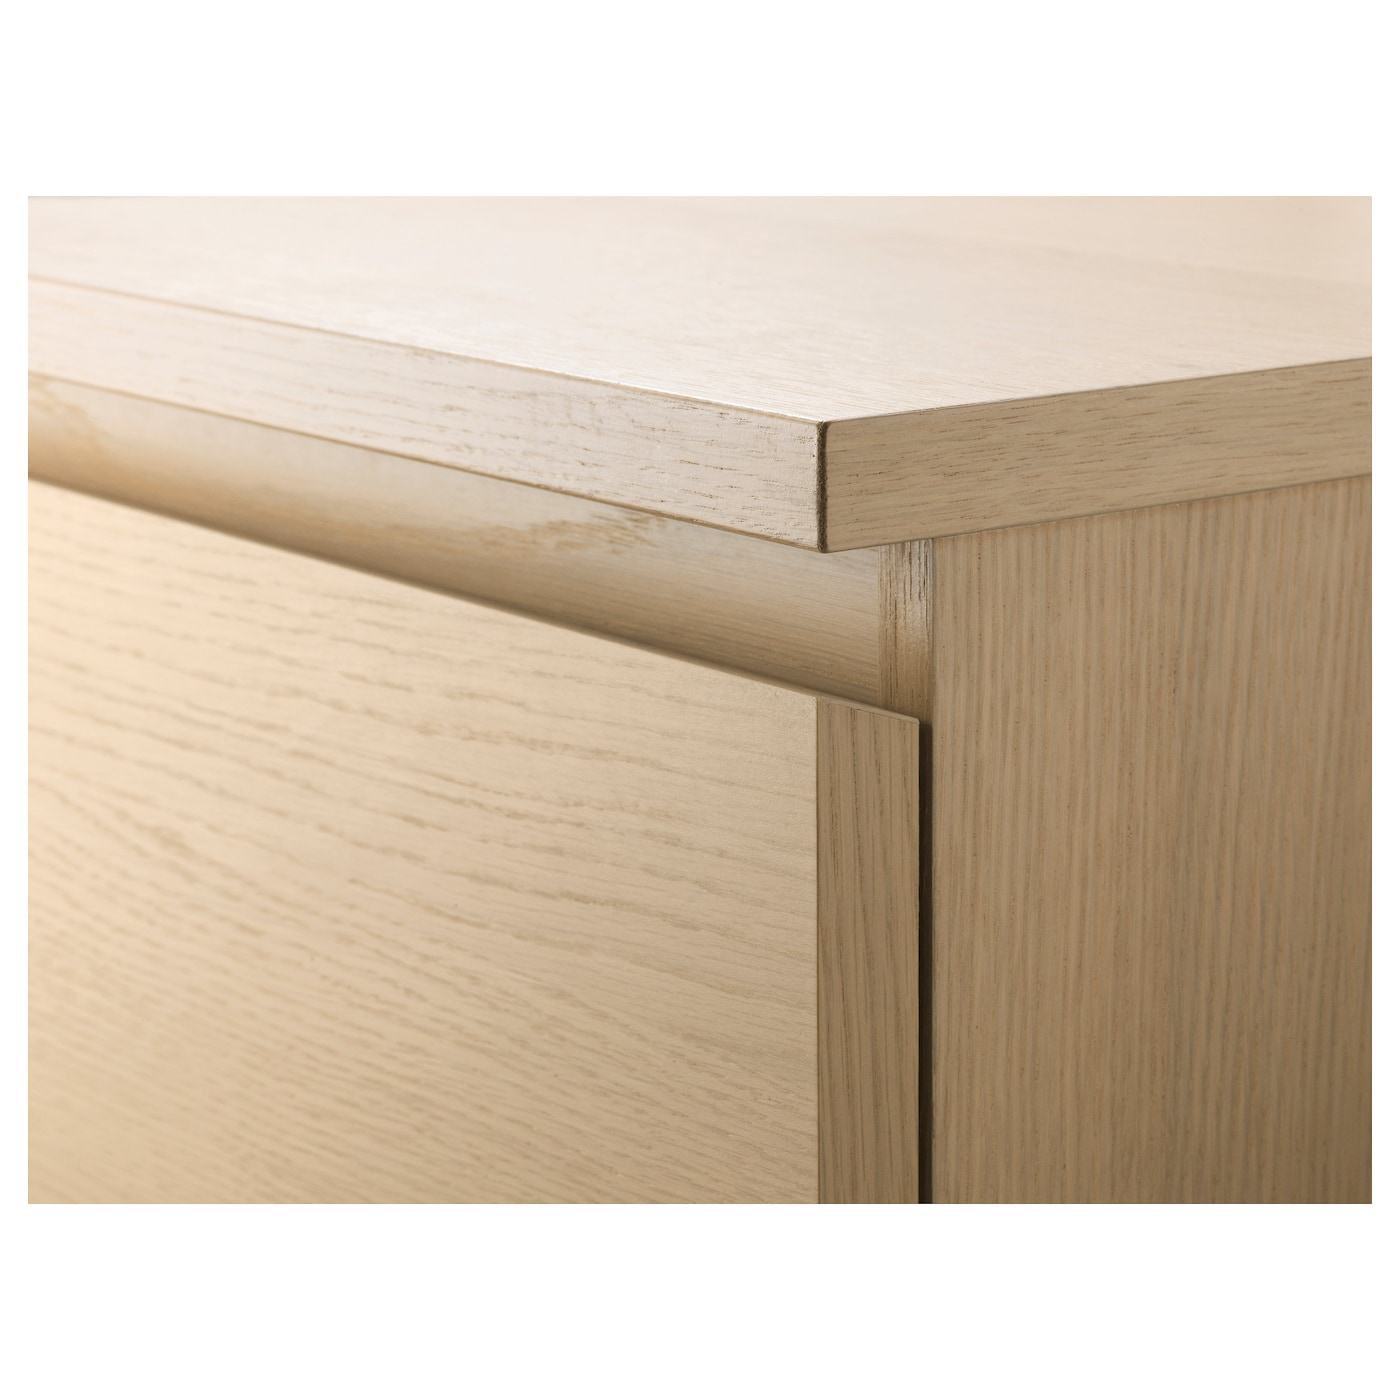 Used Ikea malm chest of 2 drawers white stained oak veneer 40x55 cm - ikea